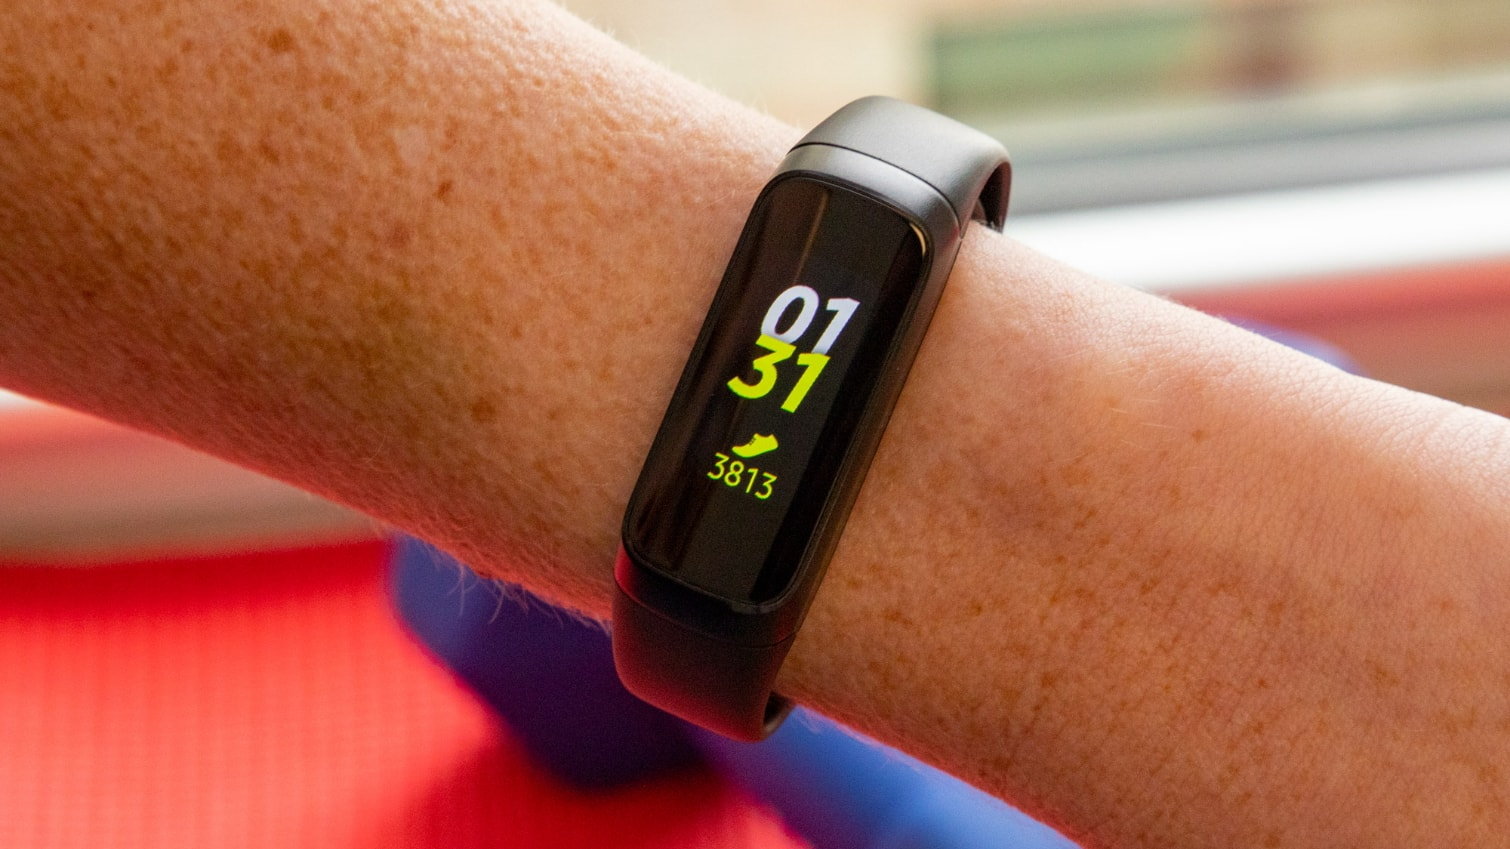 Samsung Galaxy Fit – The Korean Tech Giant's Best Fitness Tracker